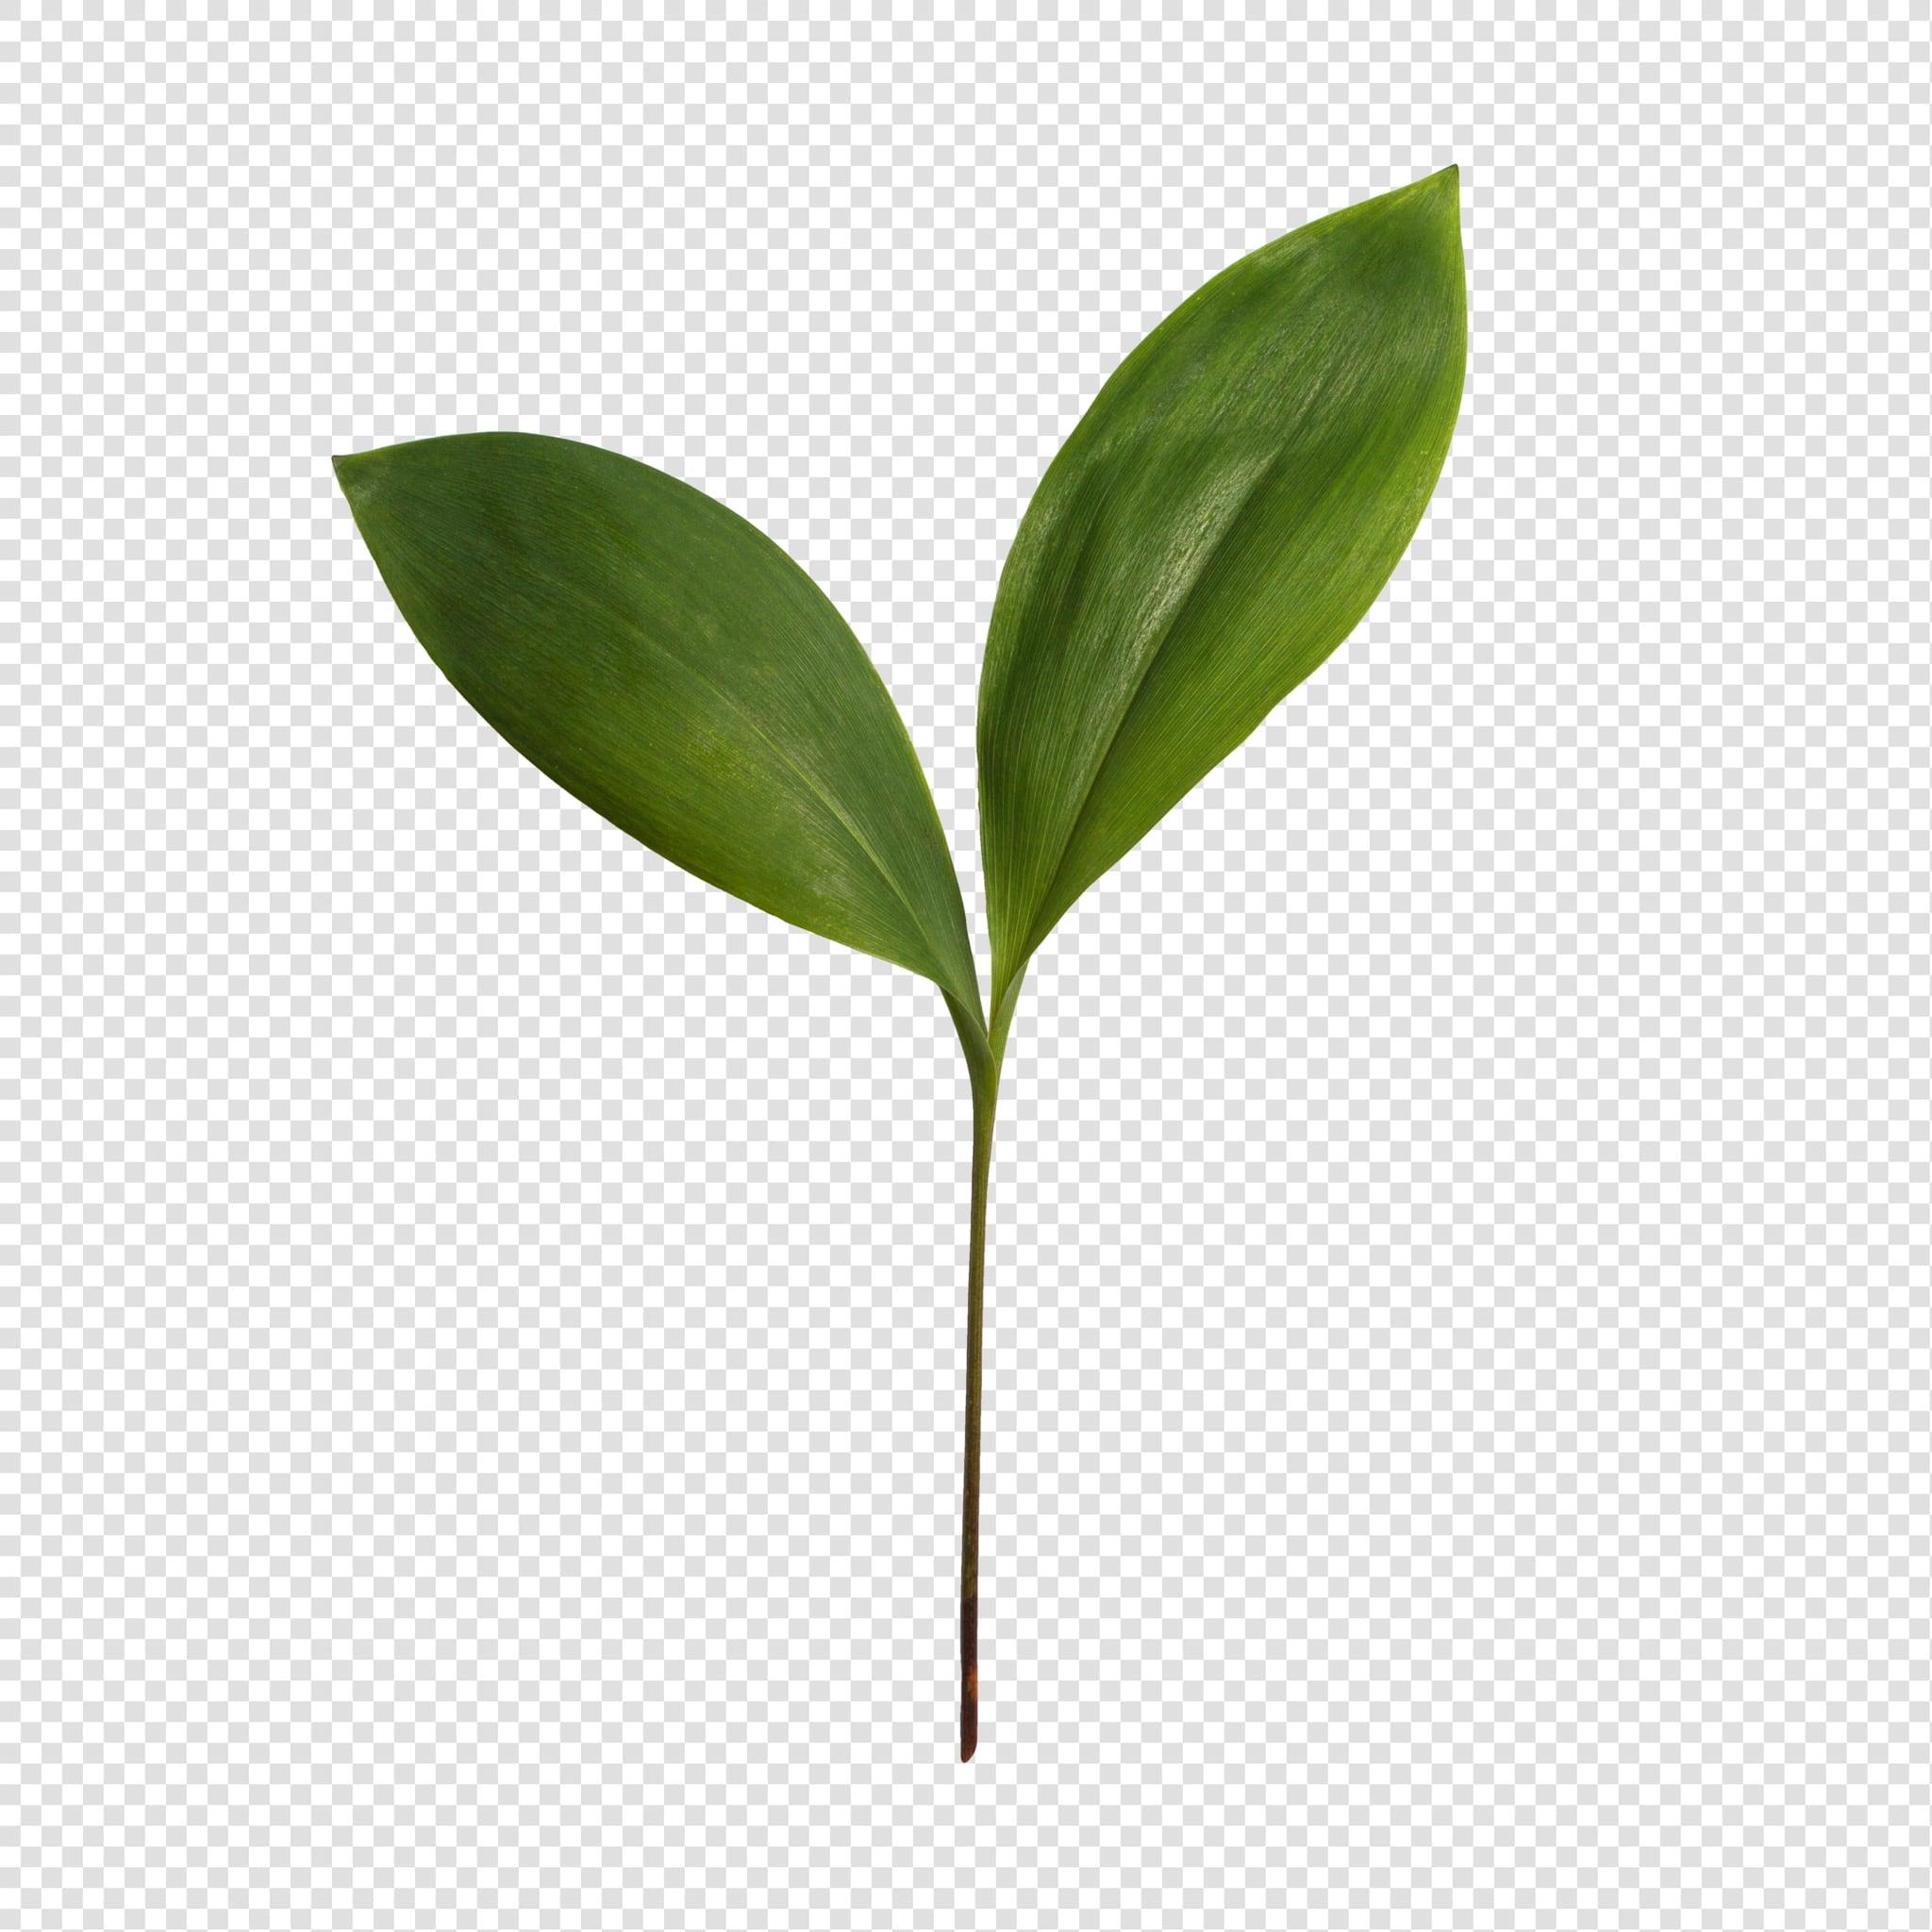 Leaf PSD isolated image